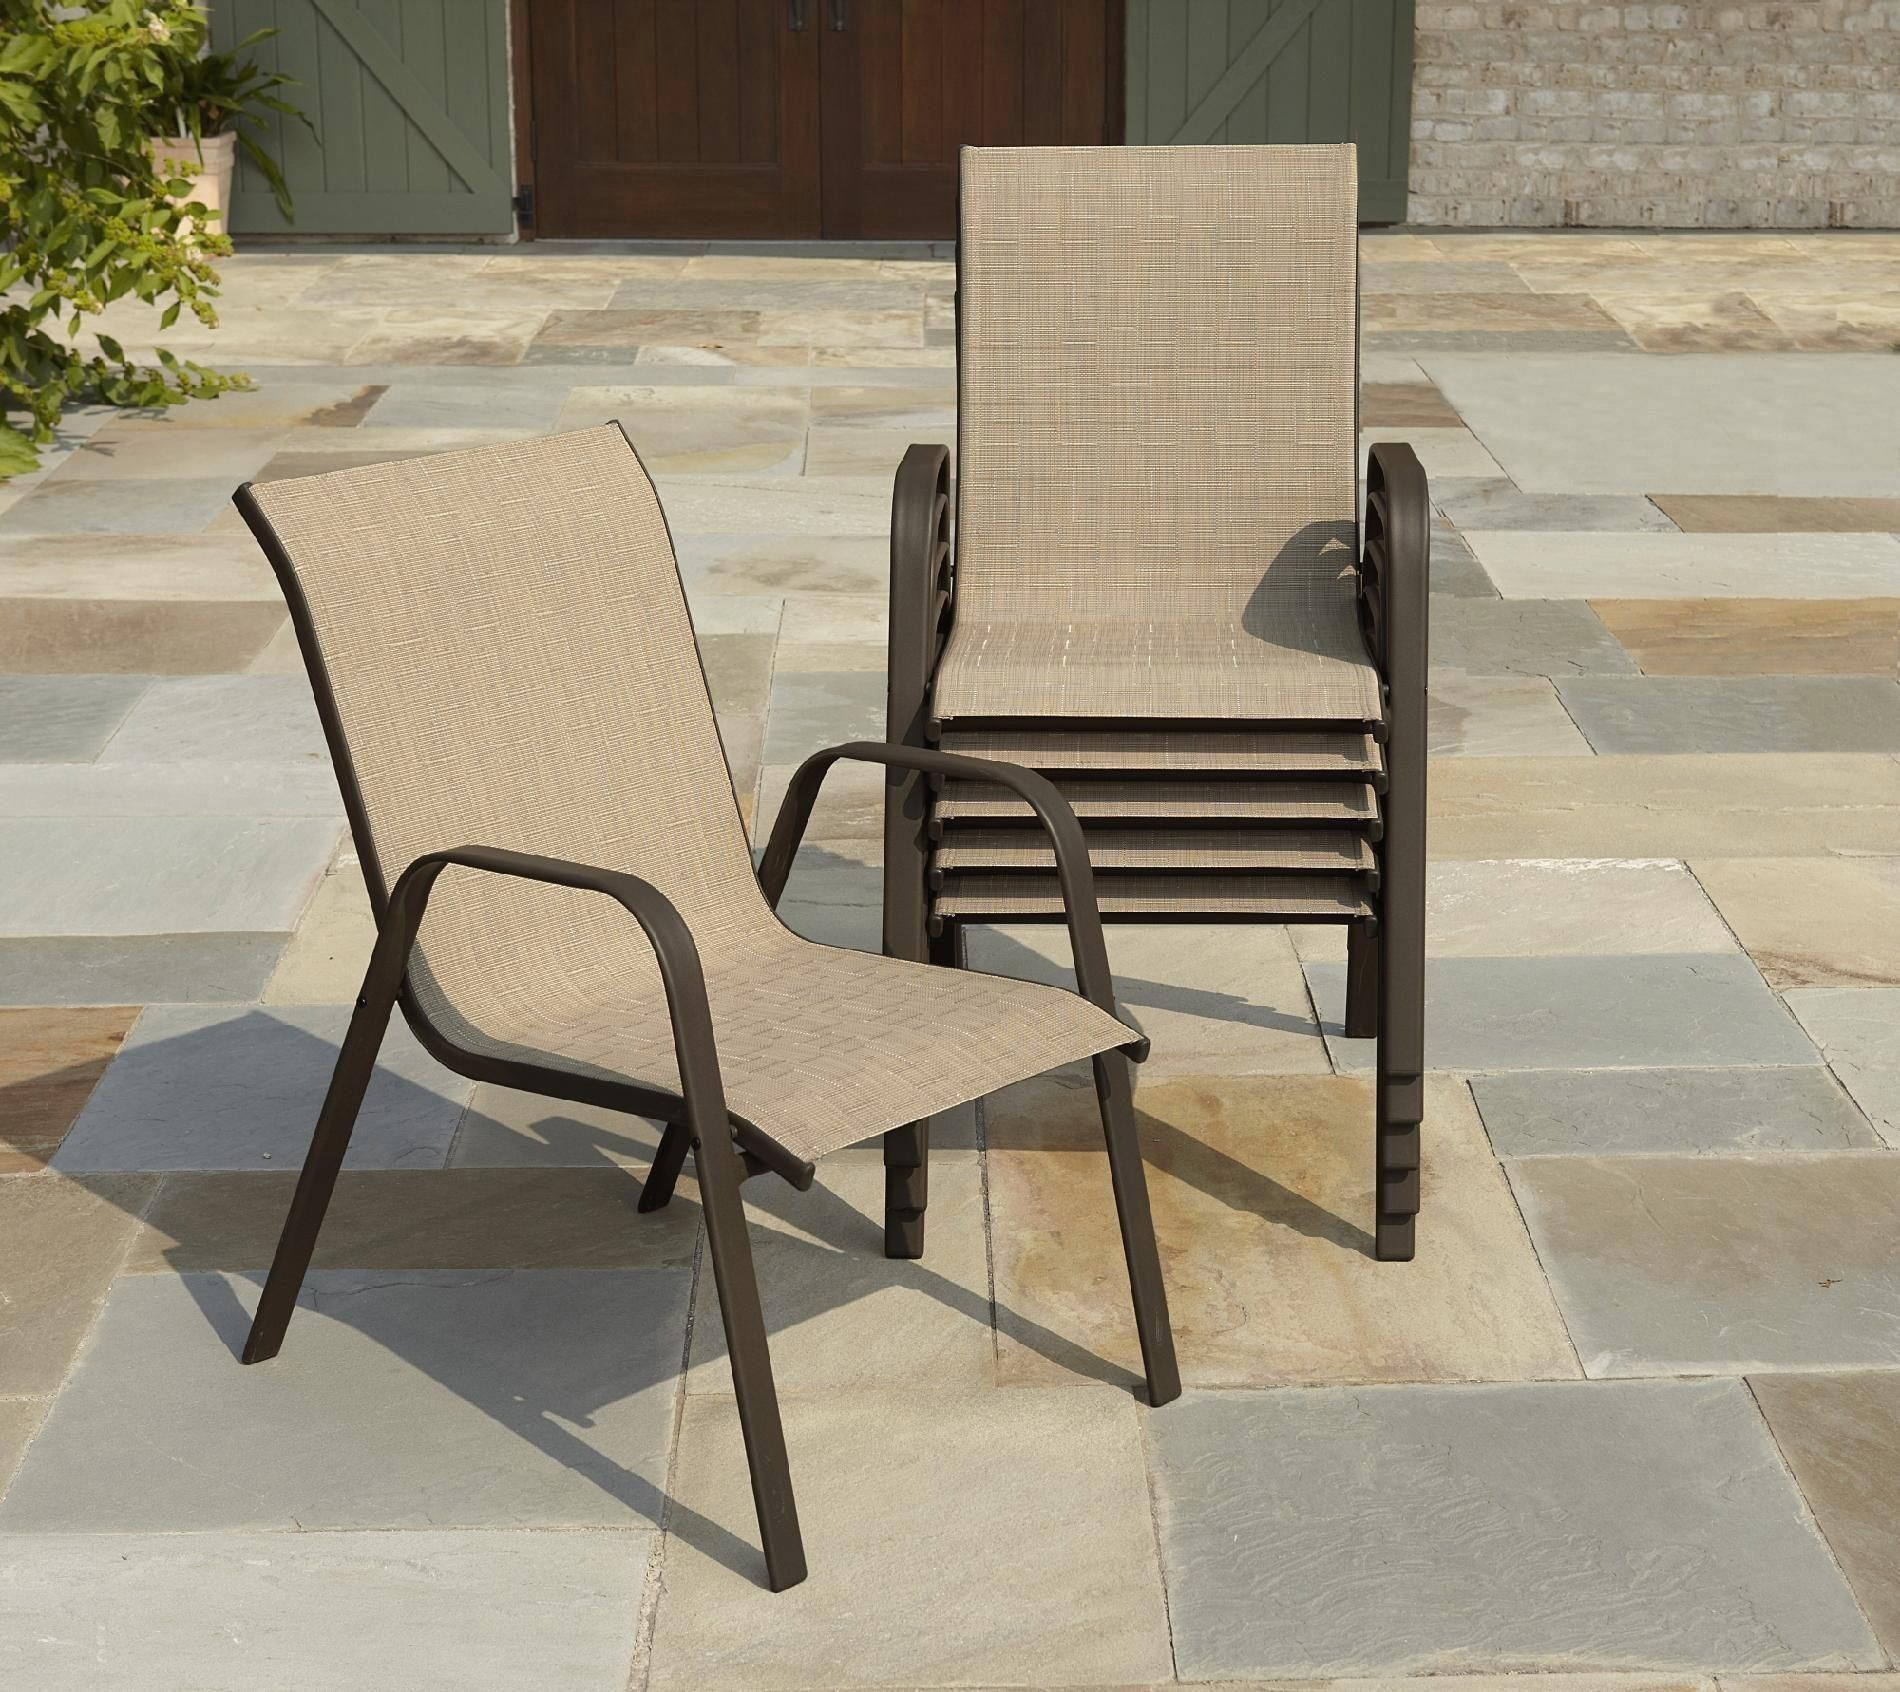 Slingback Outdoor Furniture Best Paint for Wood